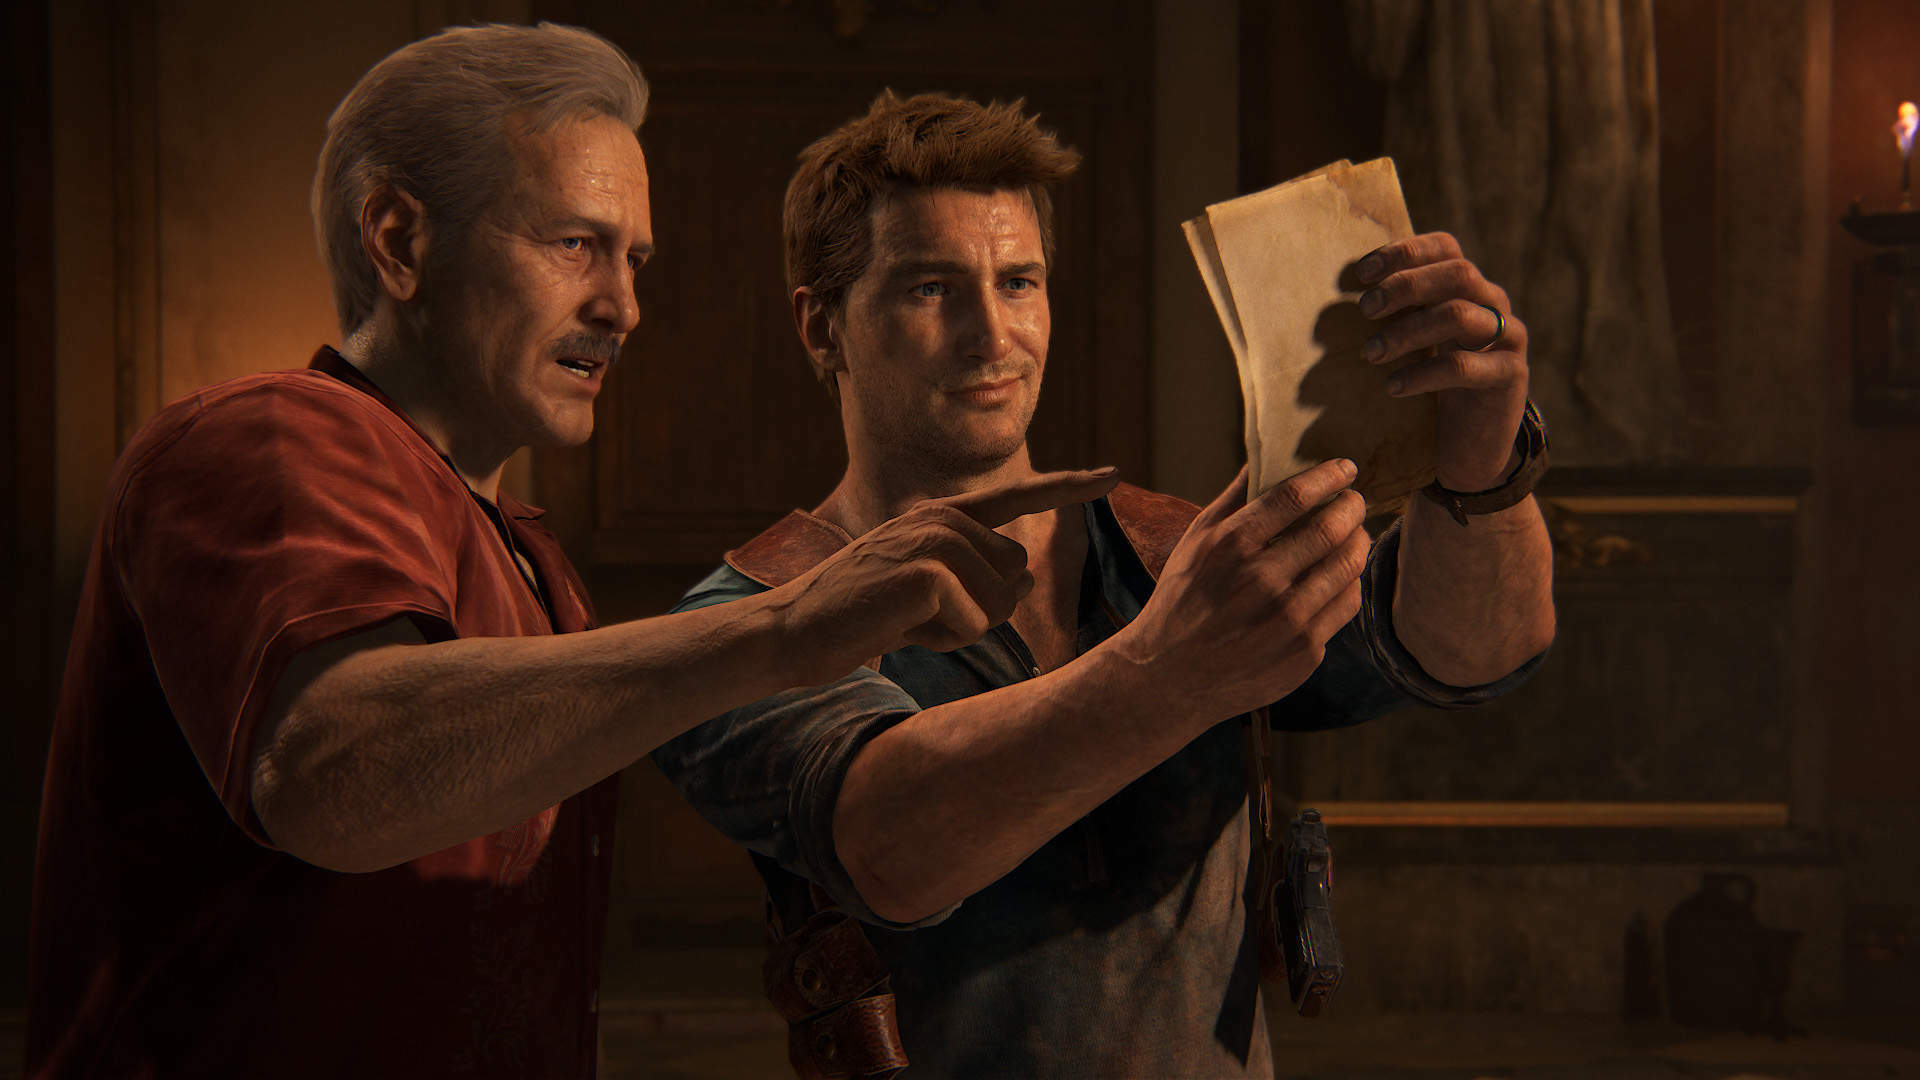 Antonio Banderas Leads the New List of Actors Joining the Uncharted Movie